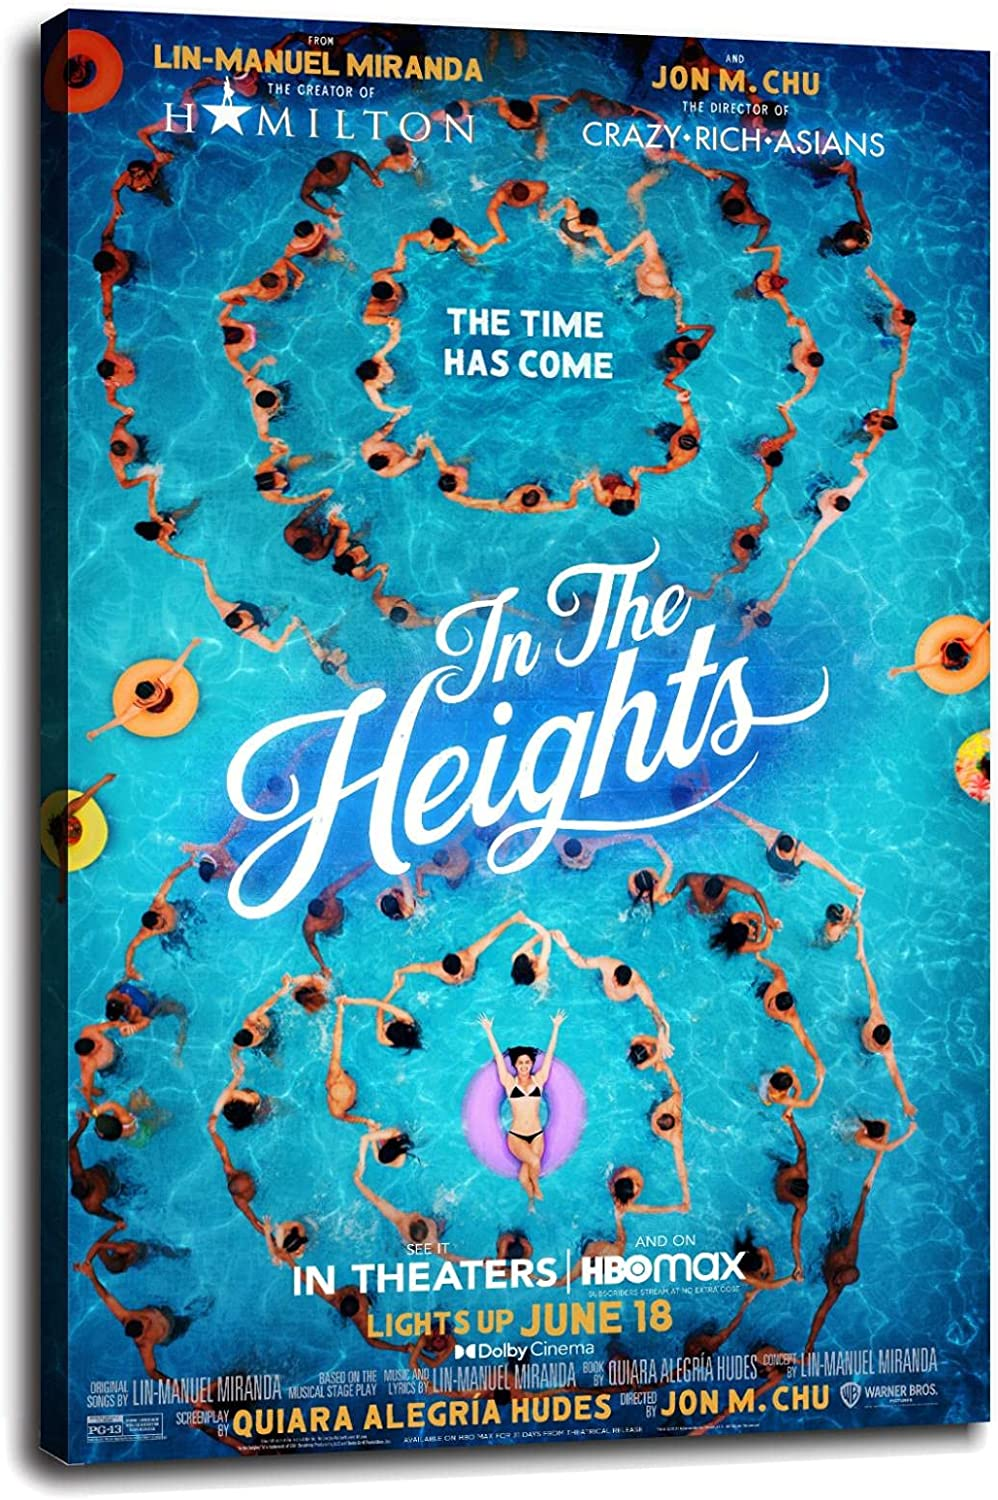 In half The Heights Canvas New sales Prints Art Wall Poster For